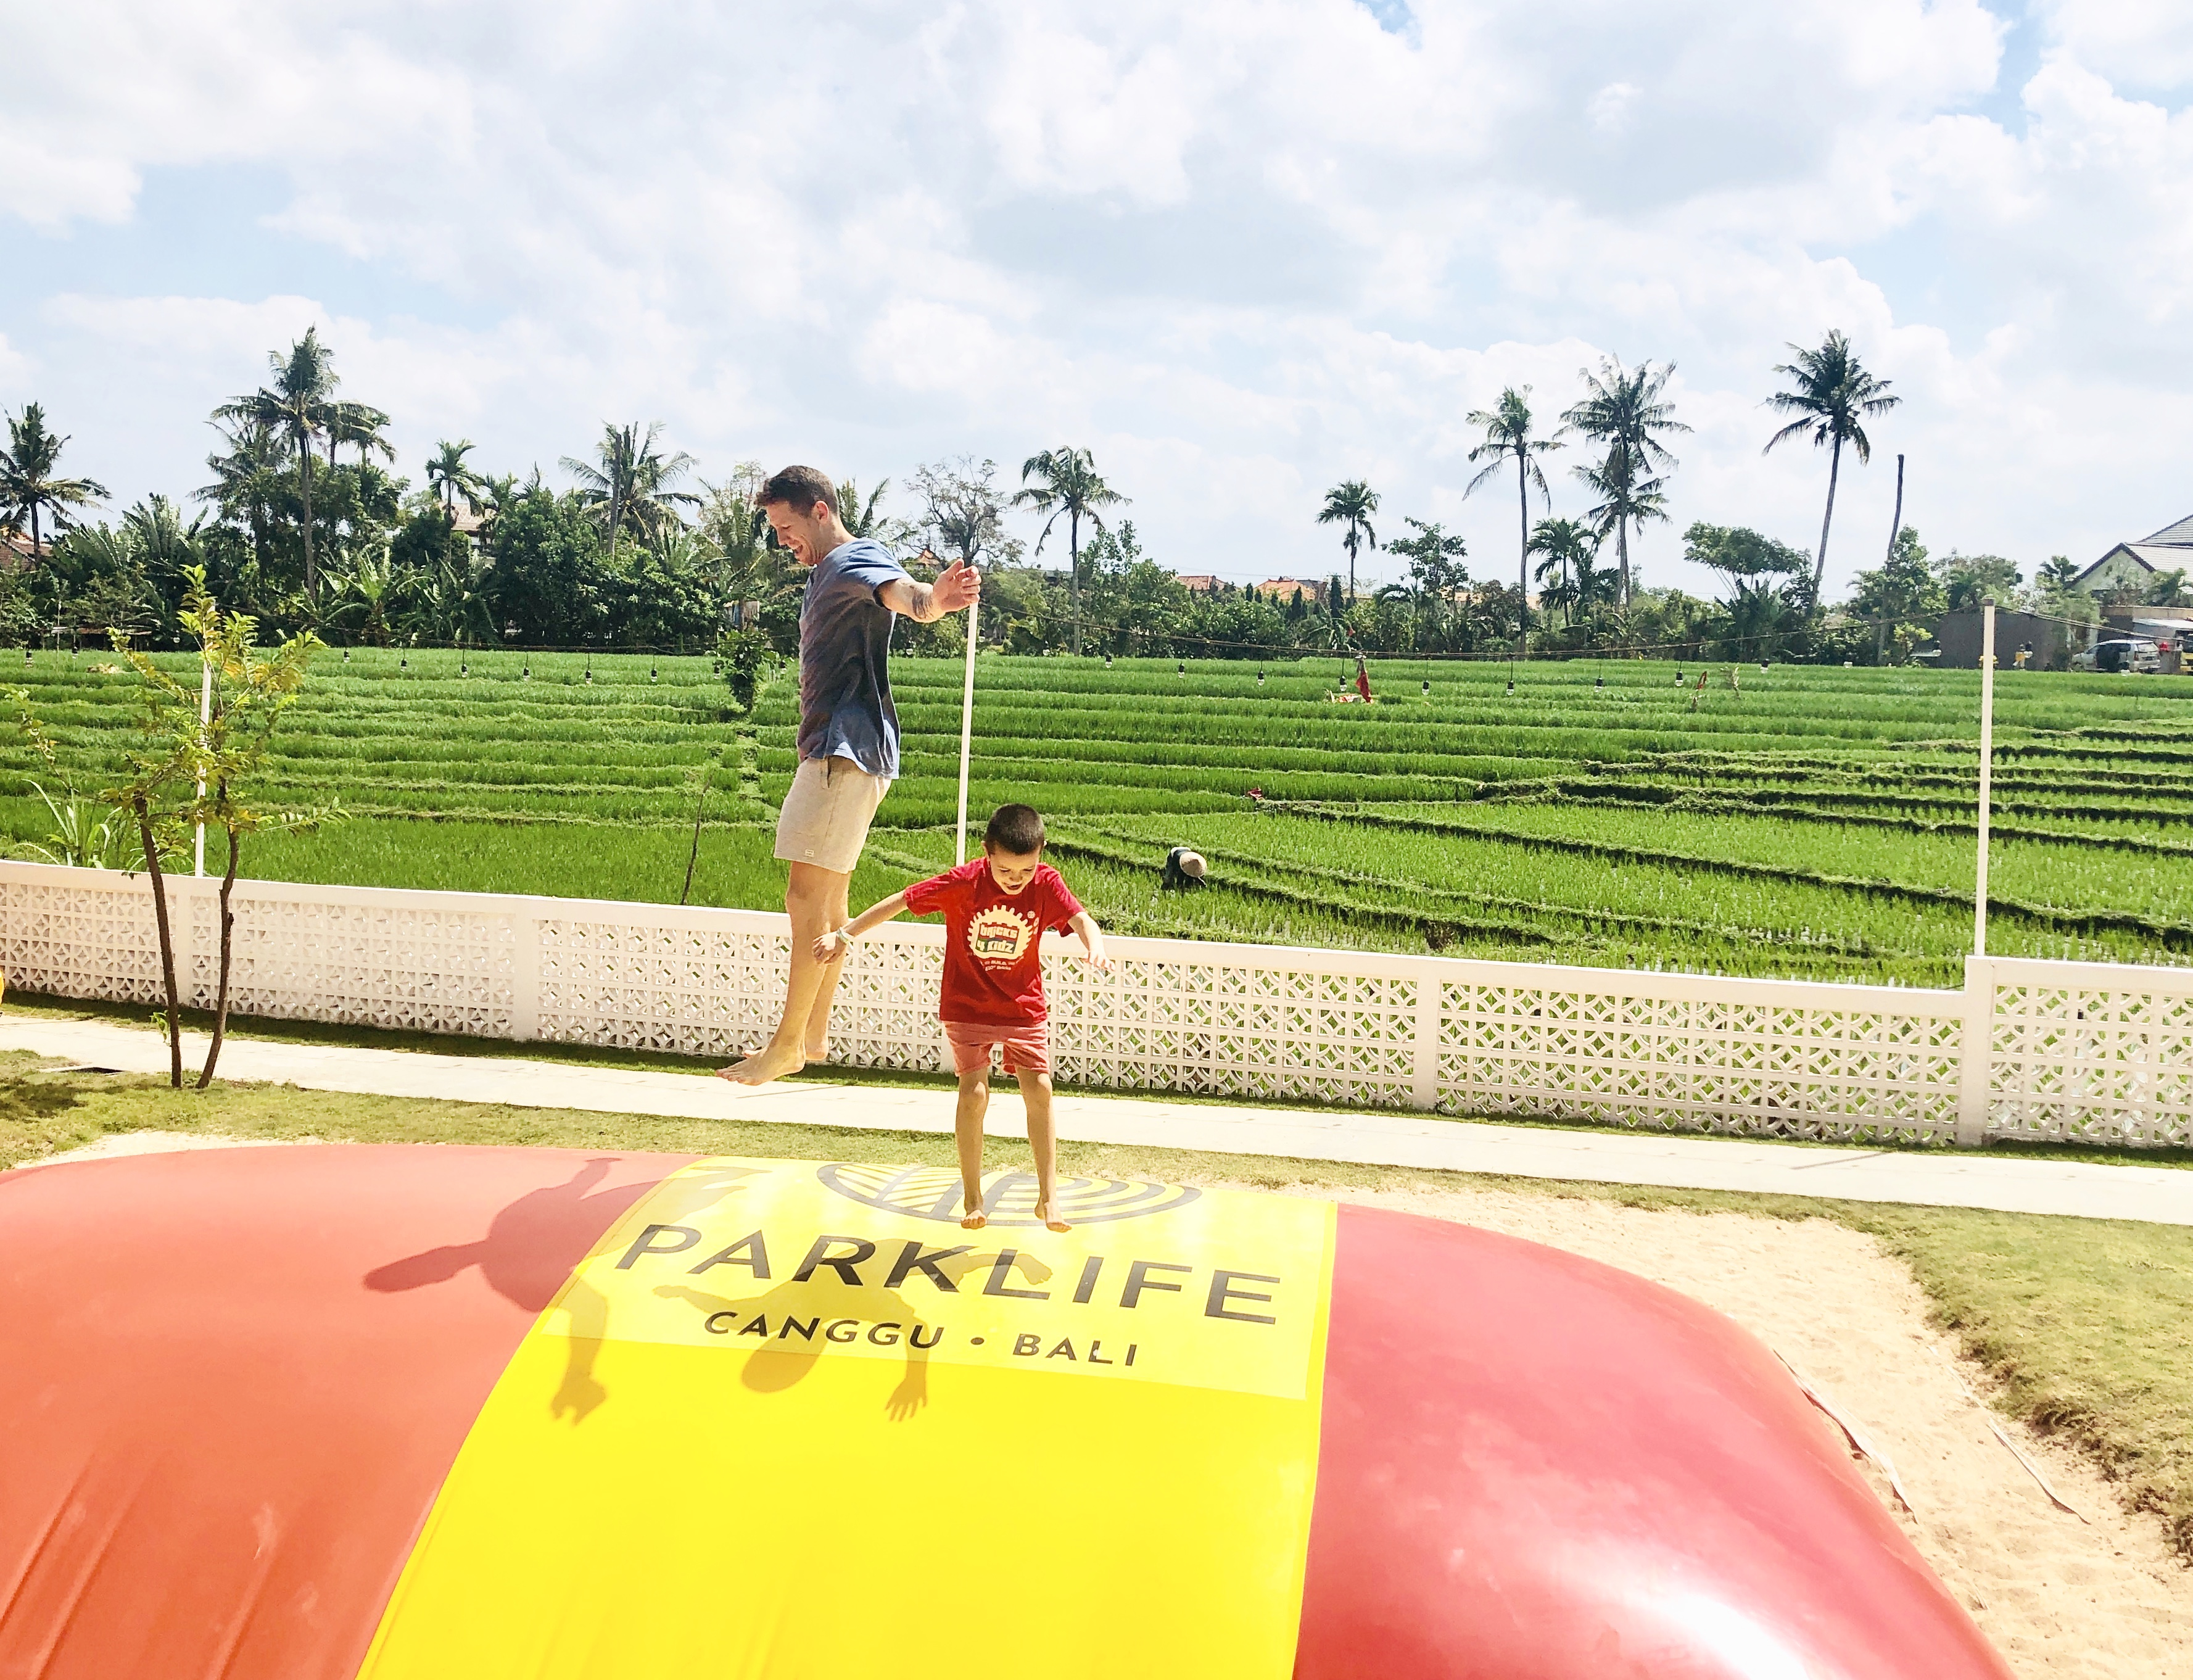 Having super fun on the giant jumping pillow at Parklife in Canggu, Bali.